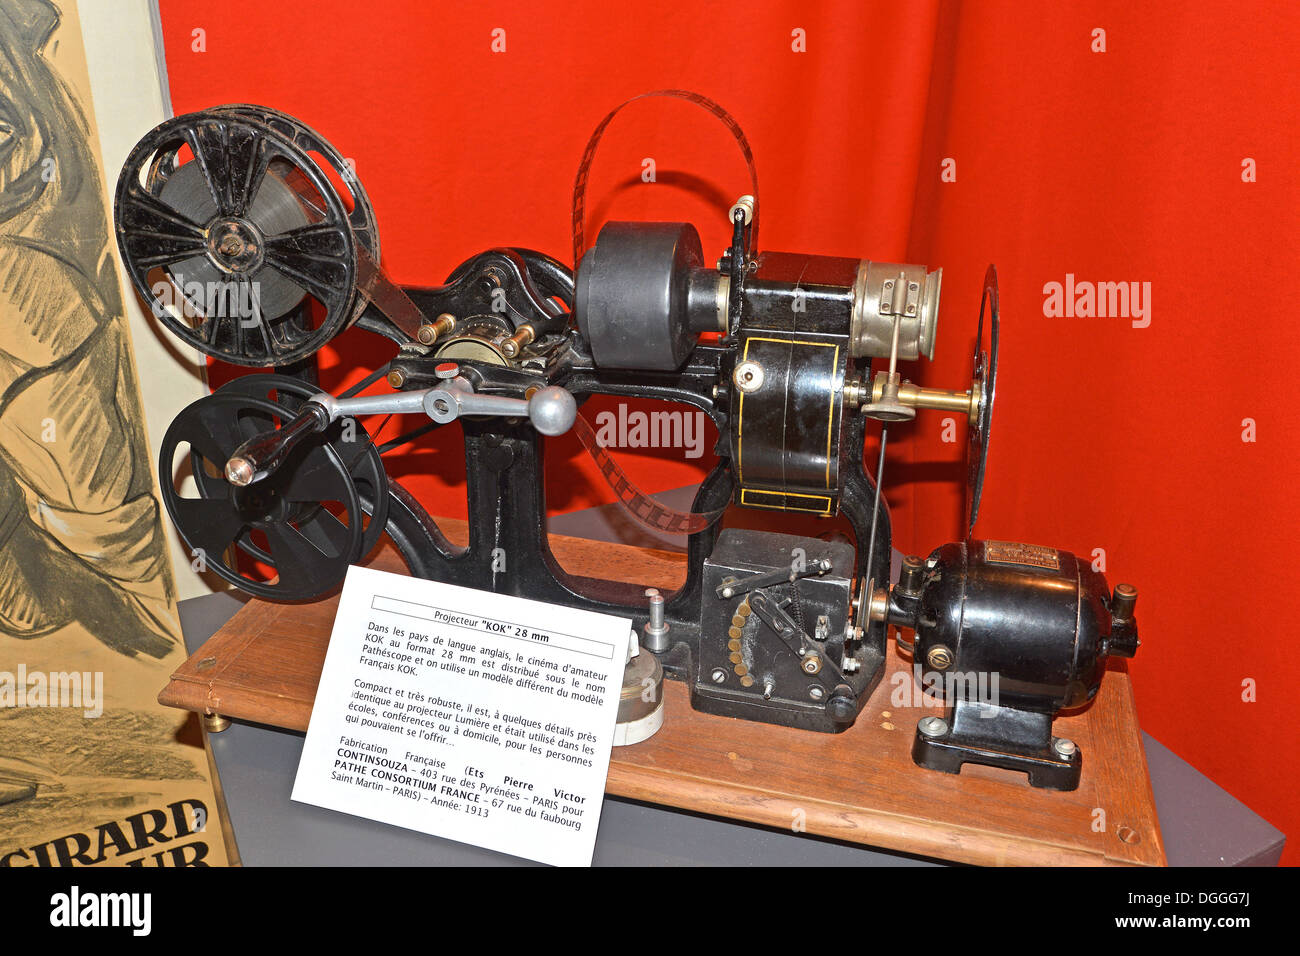 film projector KOK 28 mm made by Ets Victor Continsouza for Pathe Consortium France, Paris 1913 - Stock Image